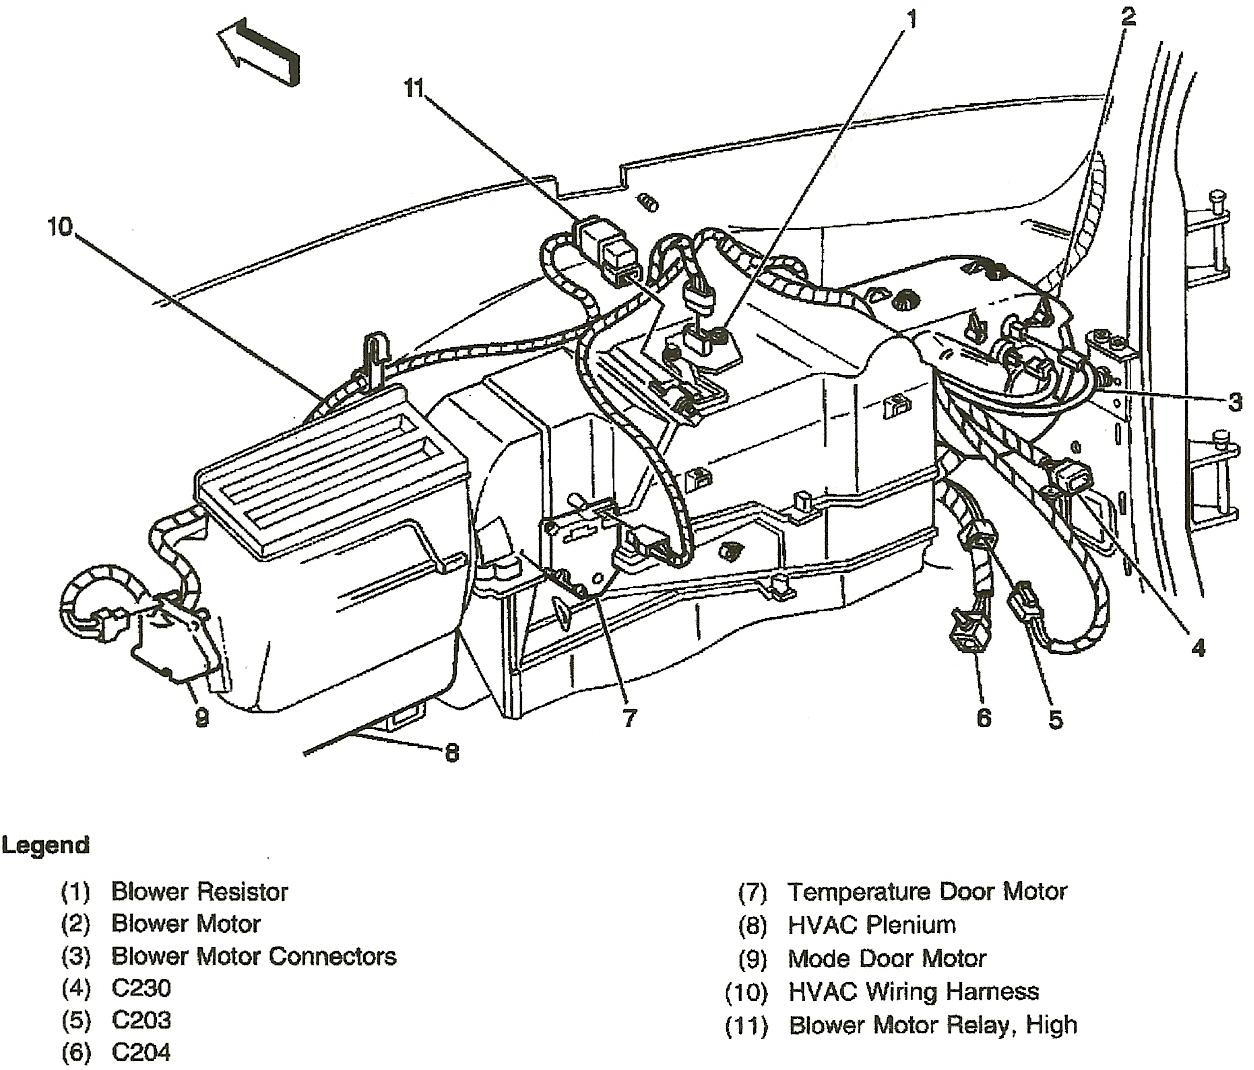 Toyota Pickup Blower Motor Wiring Diagram on 1993 toyota pickup blower motor diagram, 1985 toyota pickup blower fuse, 1972 chevy pickup blower motor diagram,